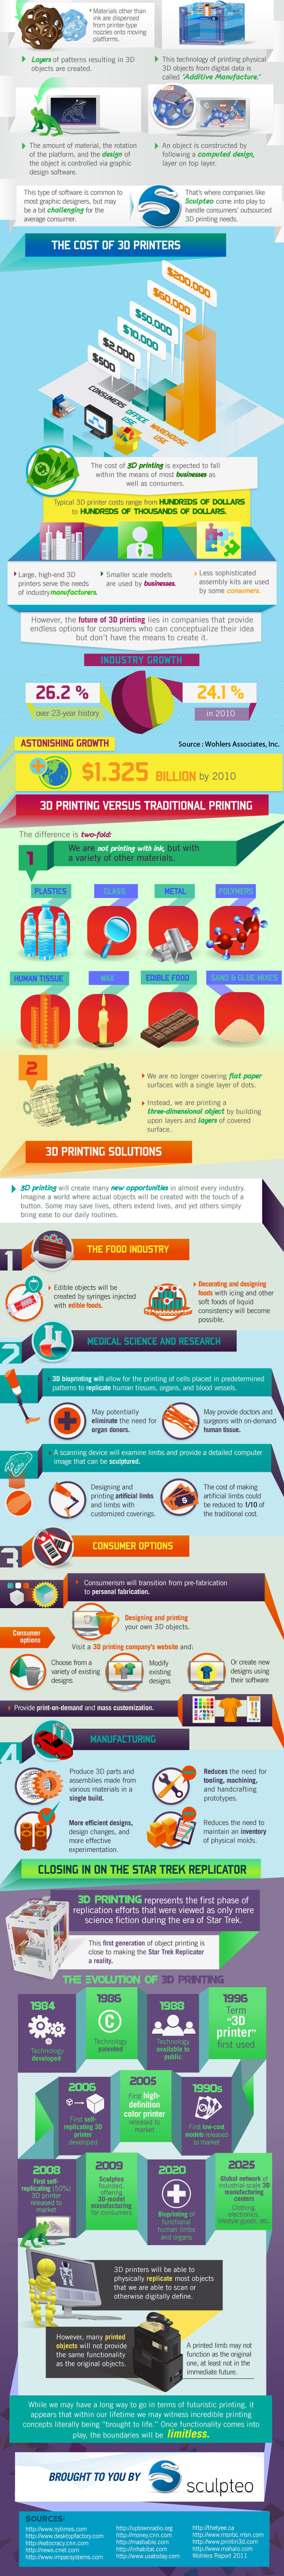 why use 3d printing infographic